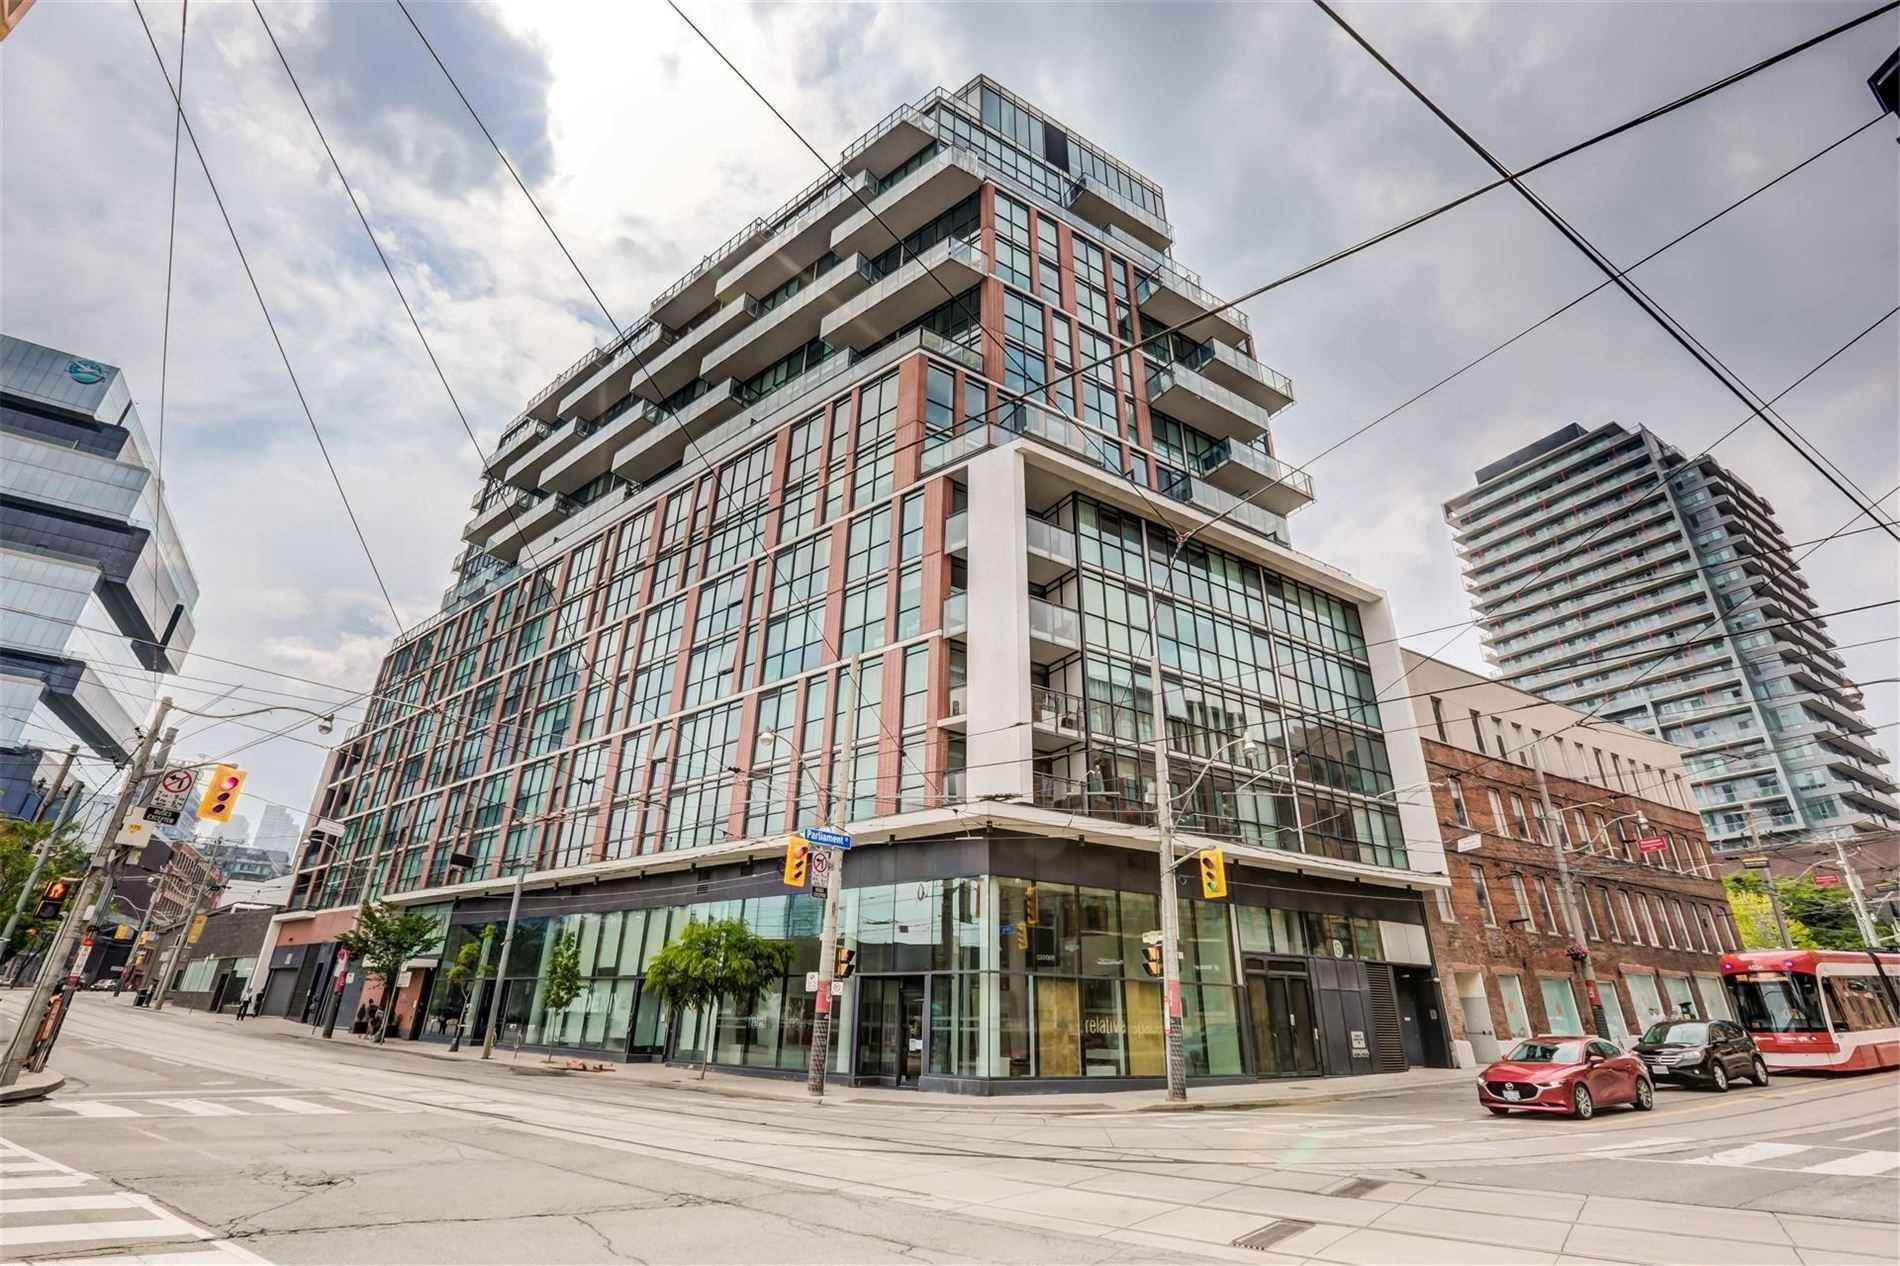 318 King St E, unit 1403 for sale in Toronto - image #1